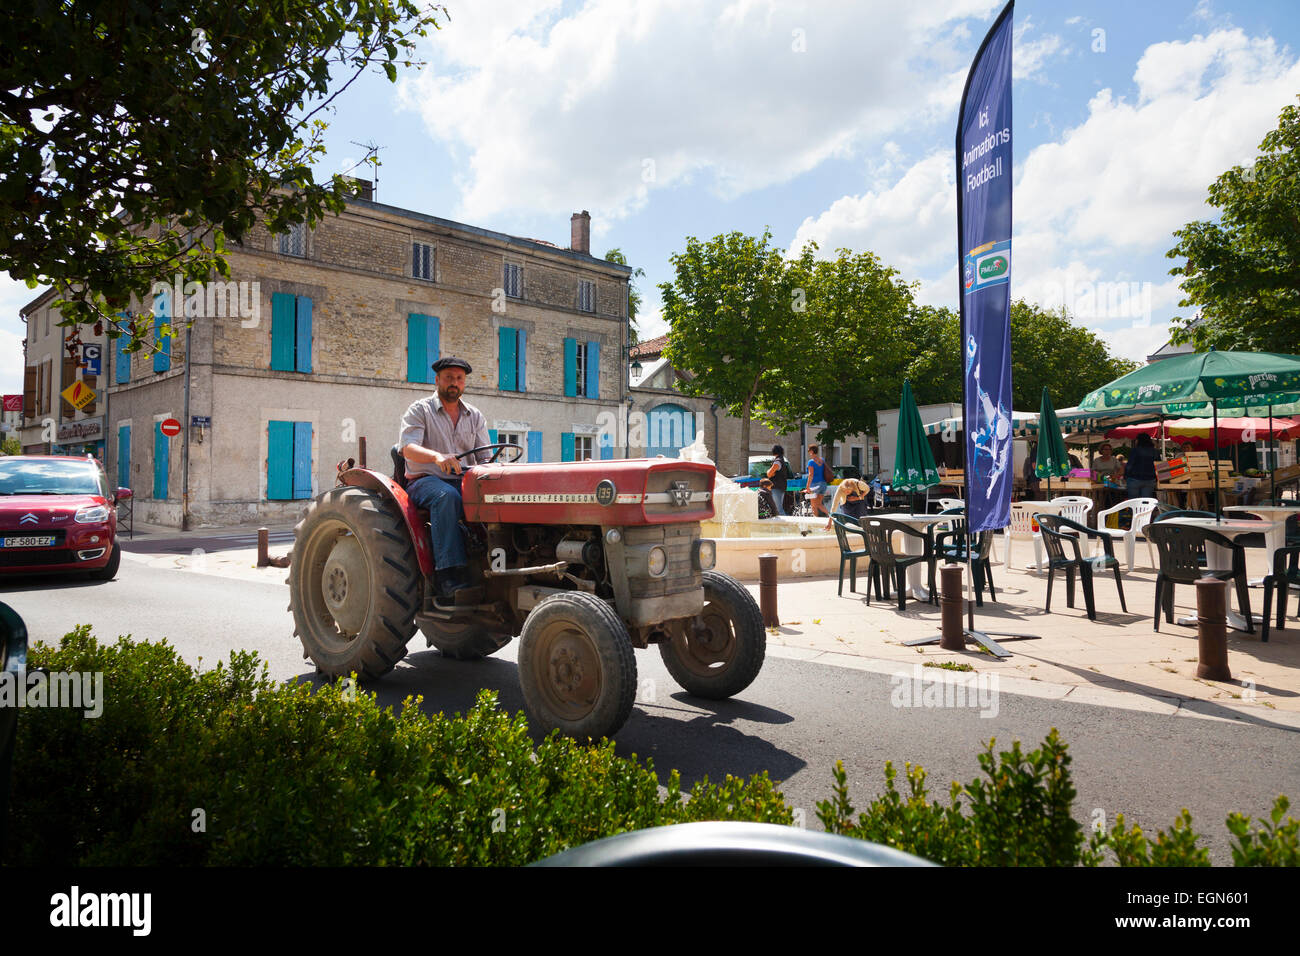 Frenchman in beret driving tractor through French village centre - Stock Image